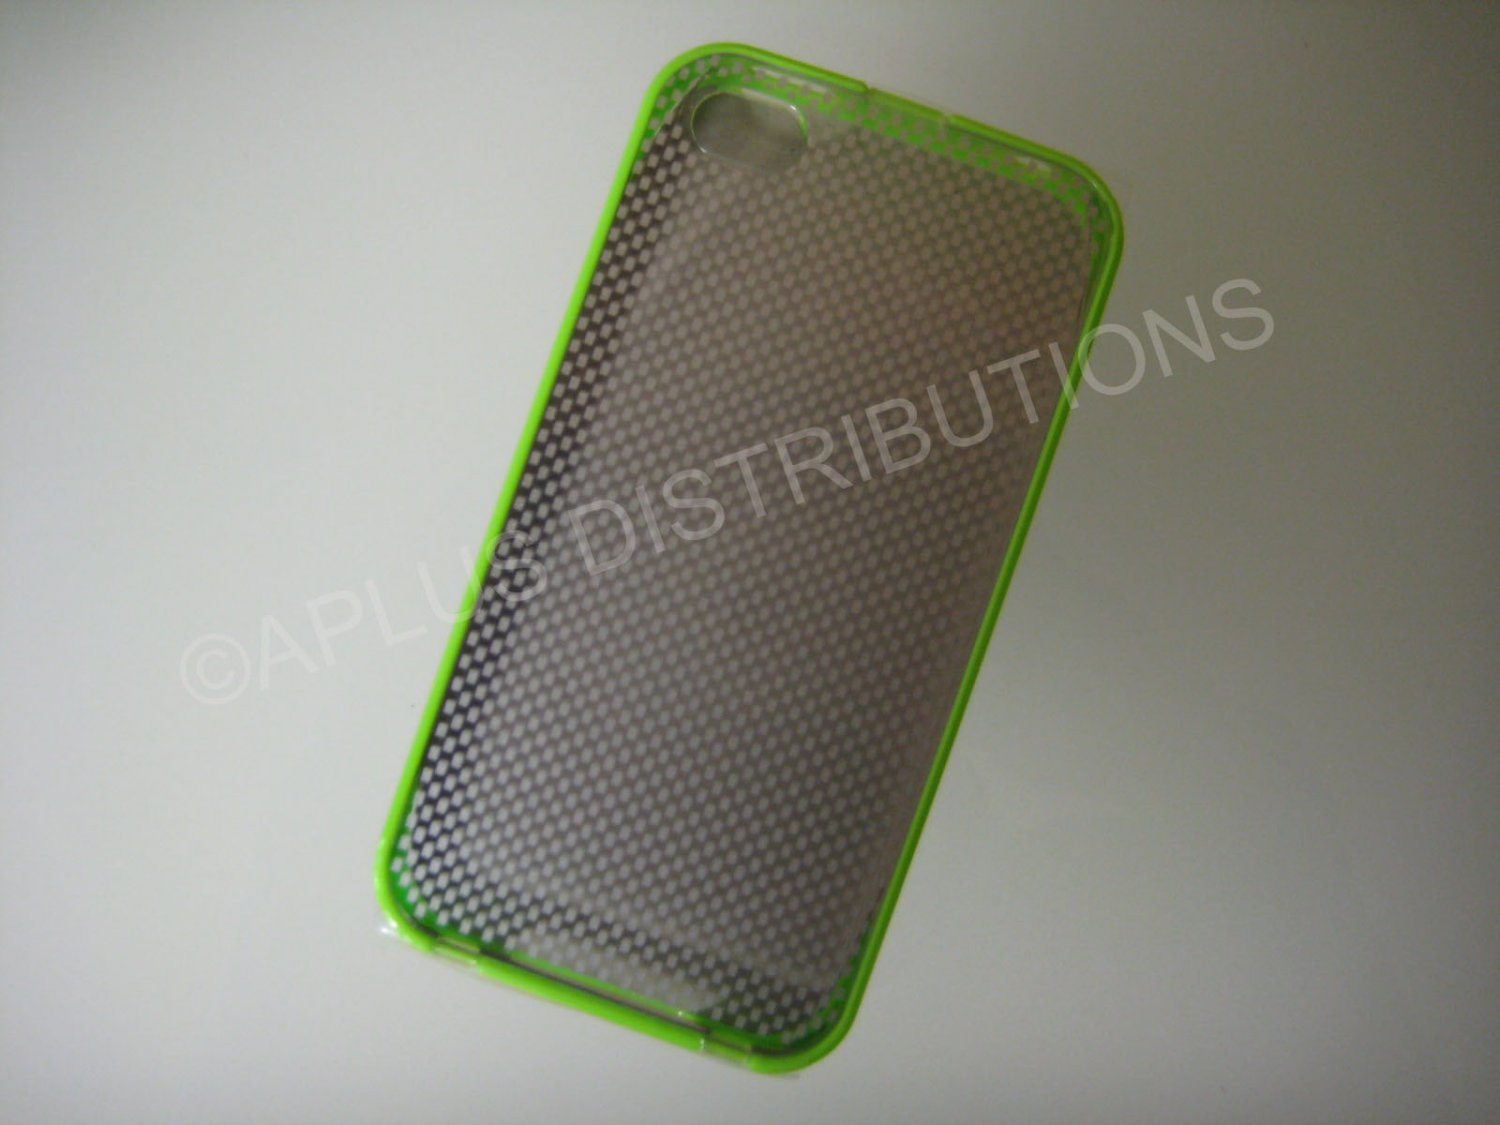 New Green Transparent Checkered Pattern Hard Protective Cover For iPhone 4 - (0150)